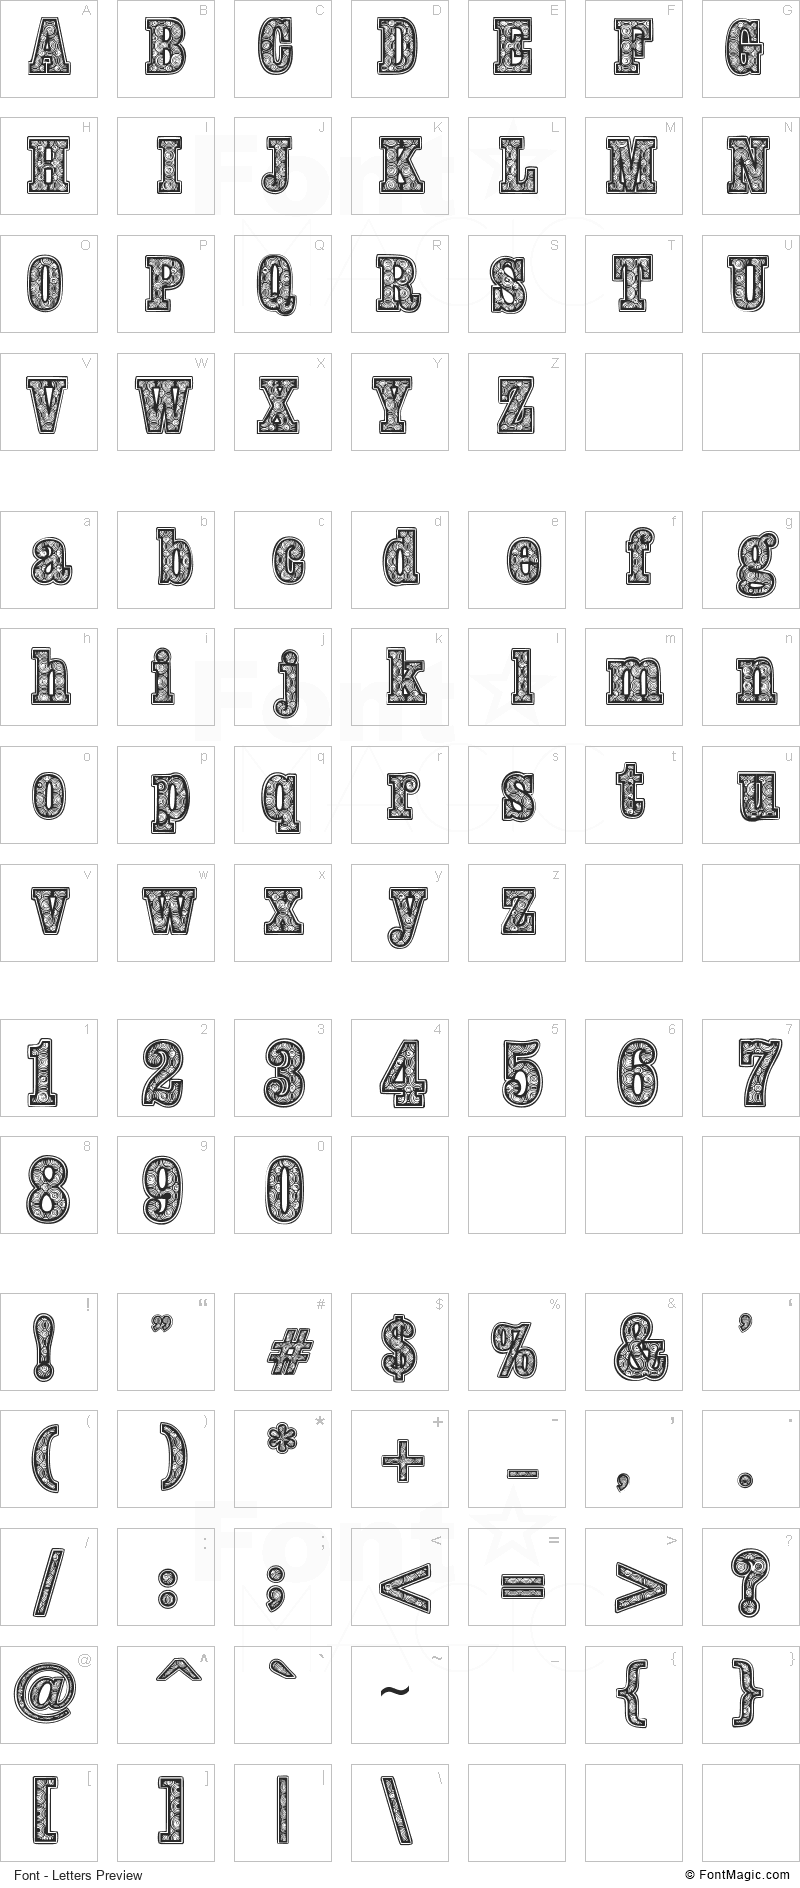 Woodcutter Fontana Font - All Latters Preview Chart